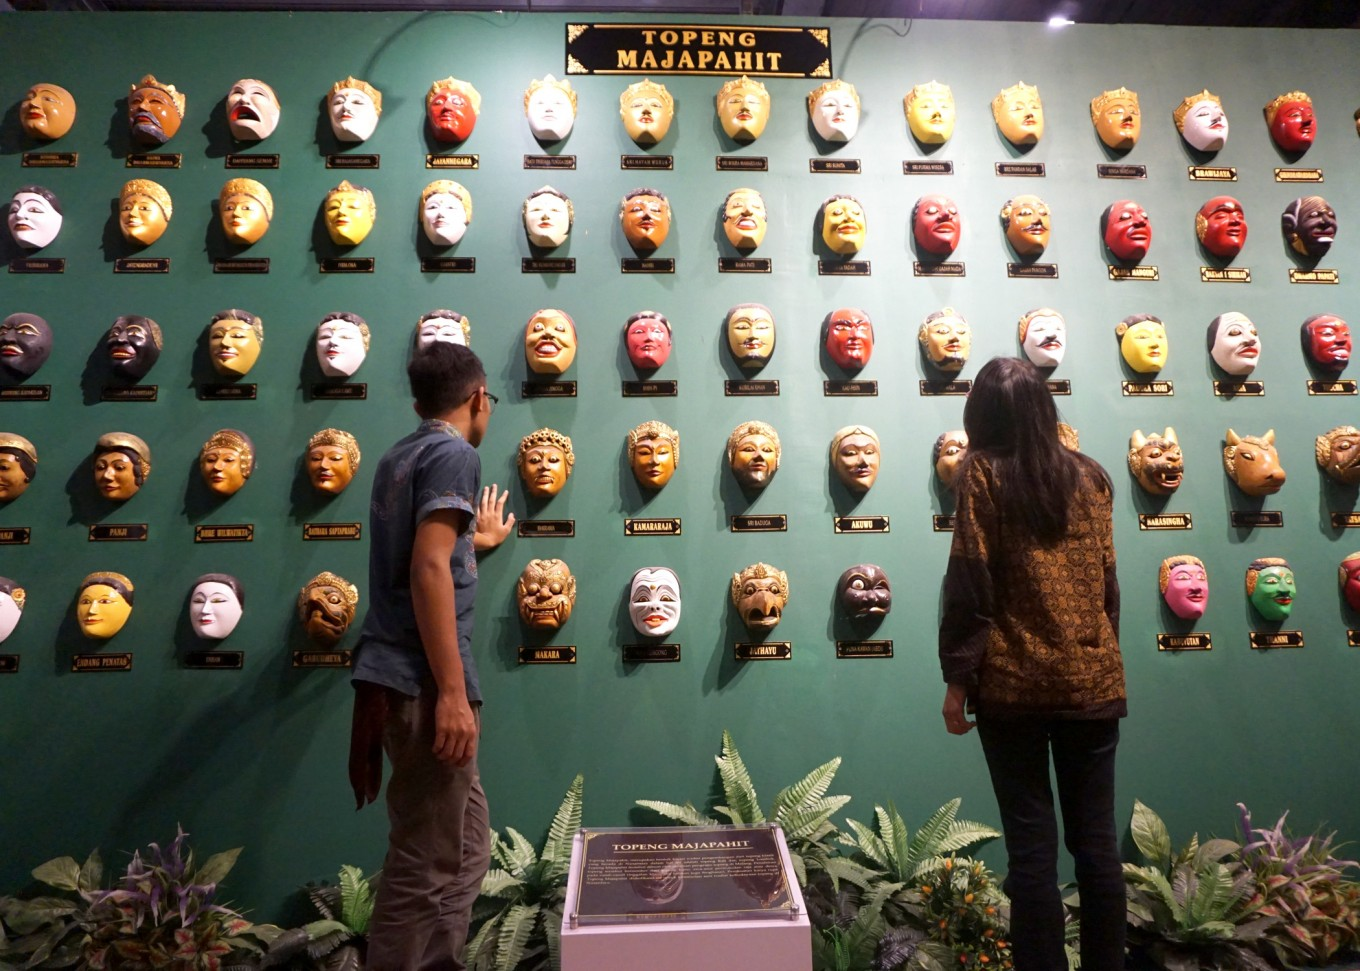 Malang museum gives visitors much-needed dose of Indonesian culture